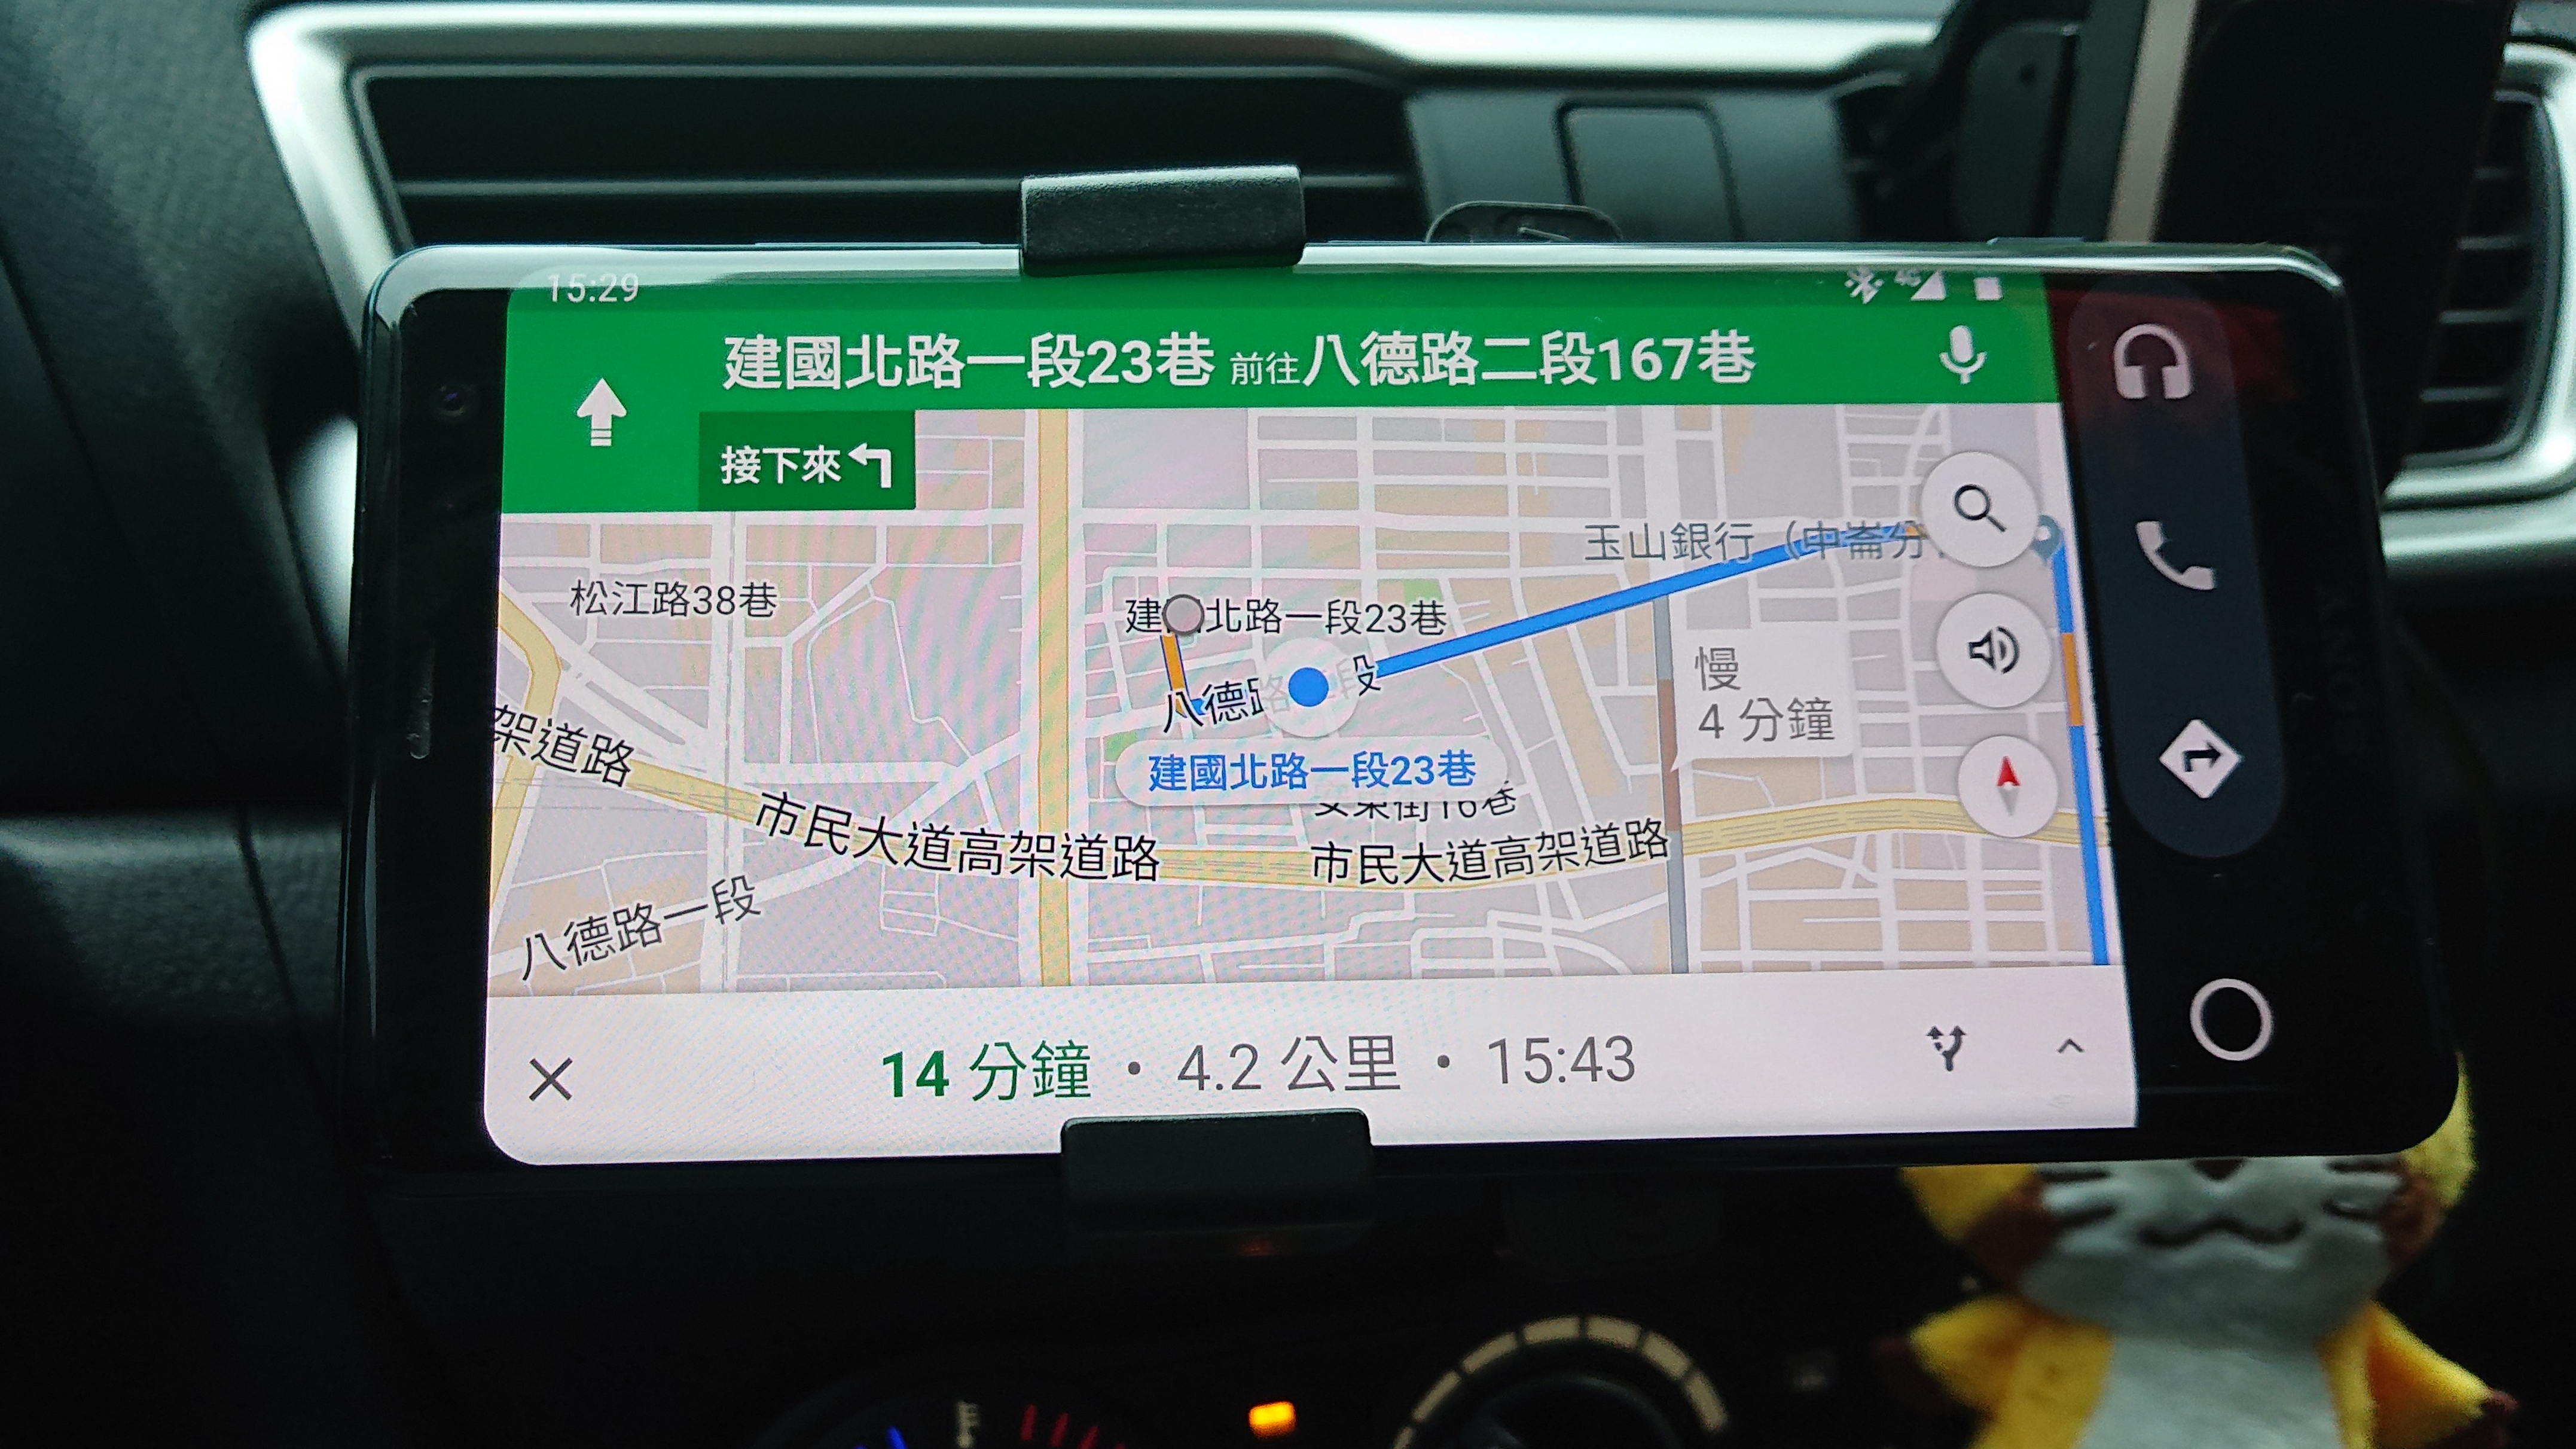 「Android應用」 Android Auto 讓行車更安心的行車模式 - 7